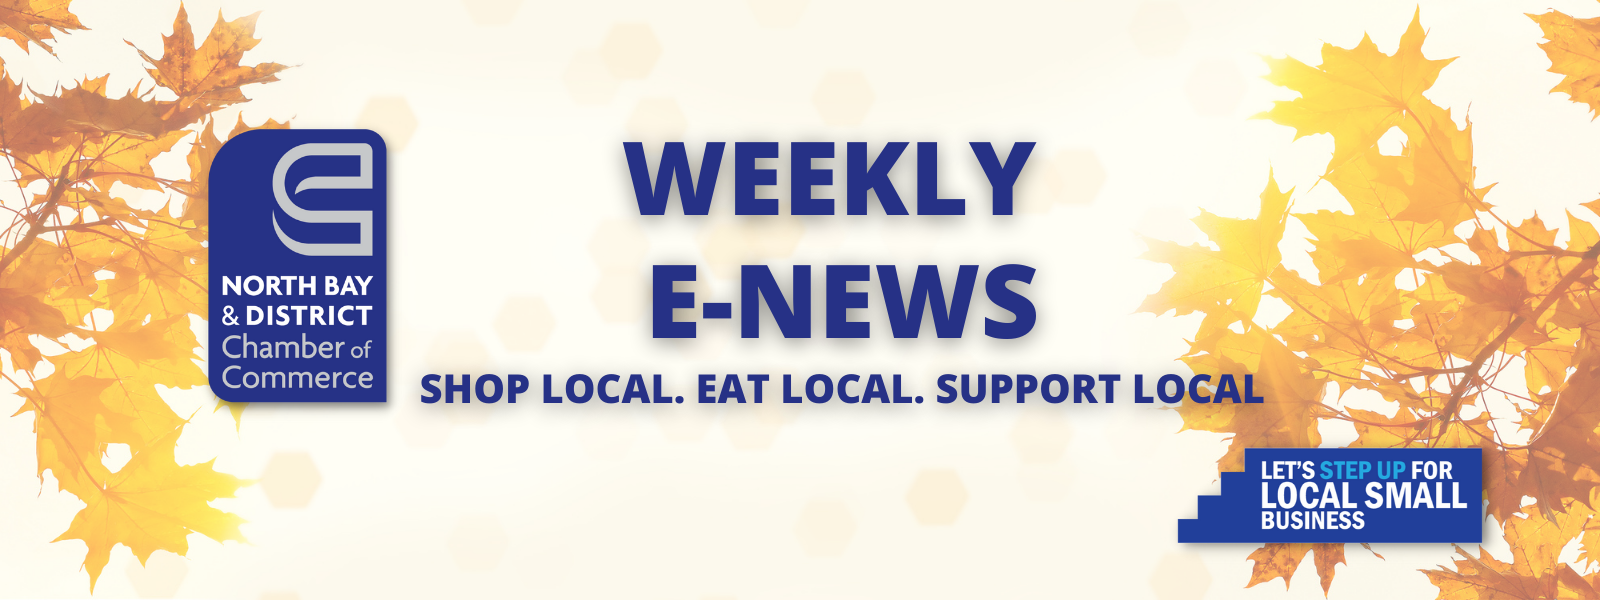 Weekly E-News - North Bay and District Chamber of Commerce Sept Leaves